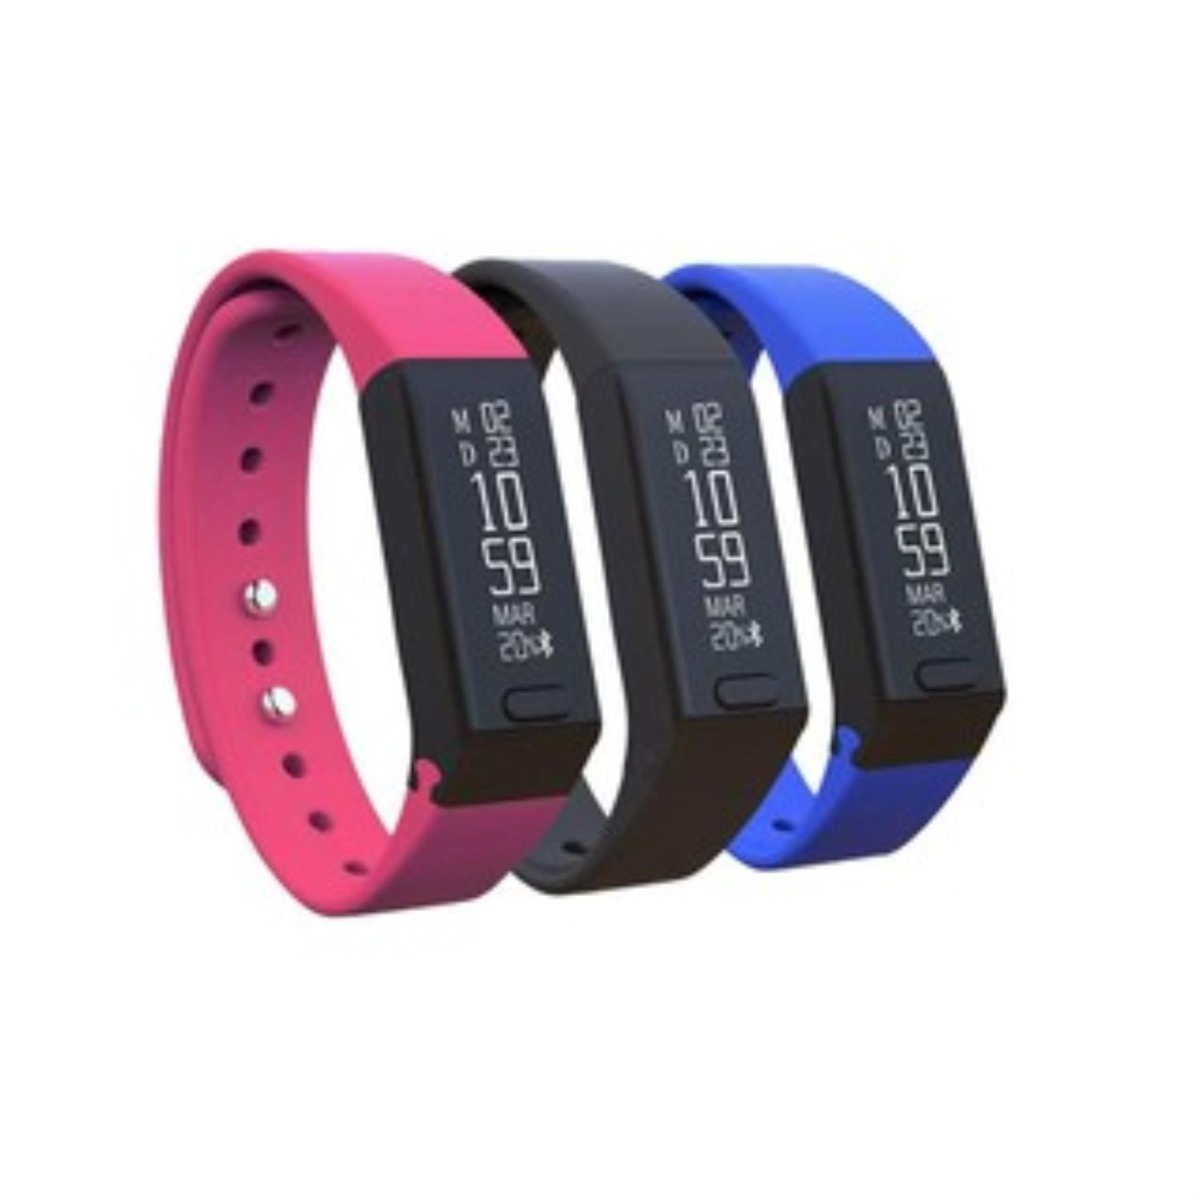 Smartband Pcbox Care 3 Mallas Boton Anti Panico Whatsapp Usb